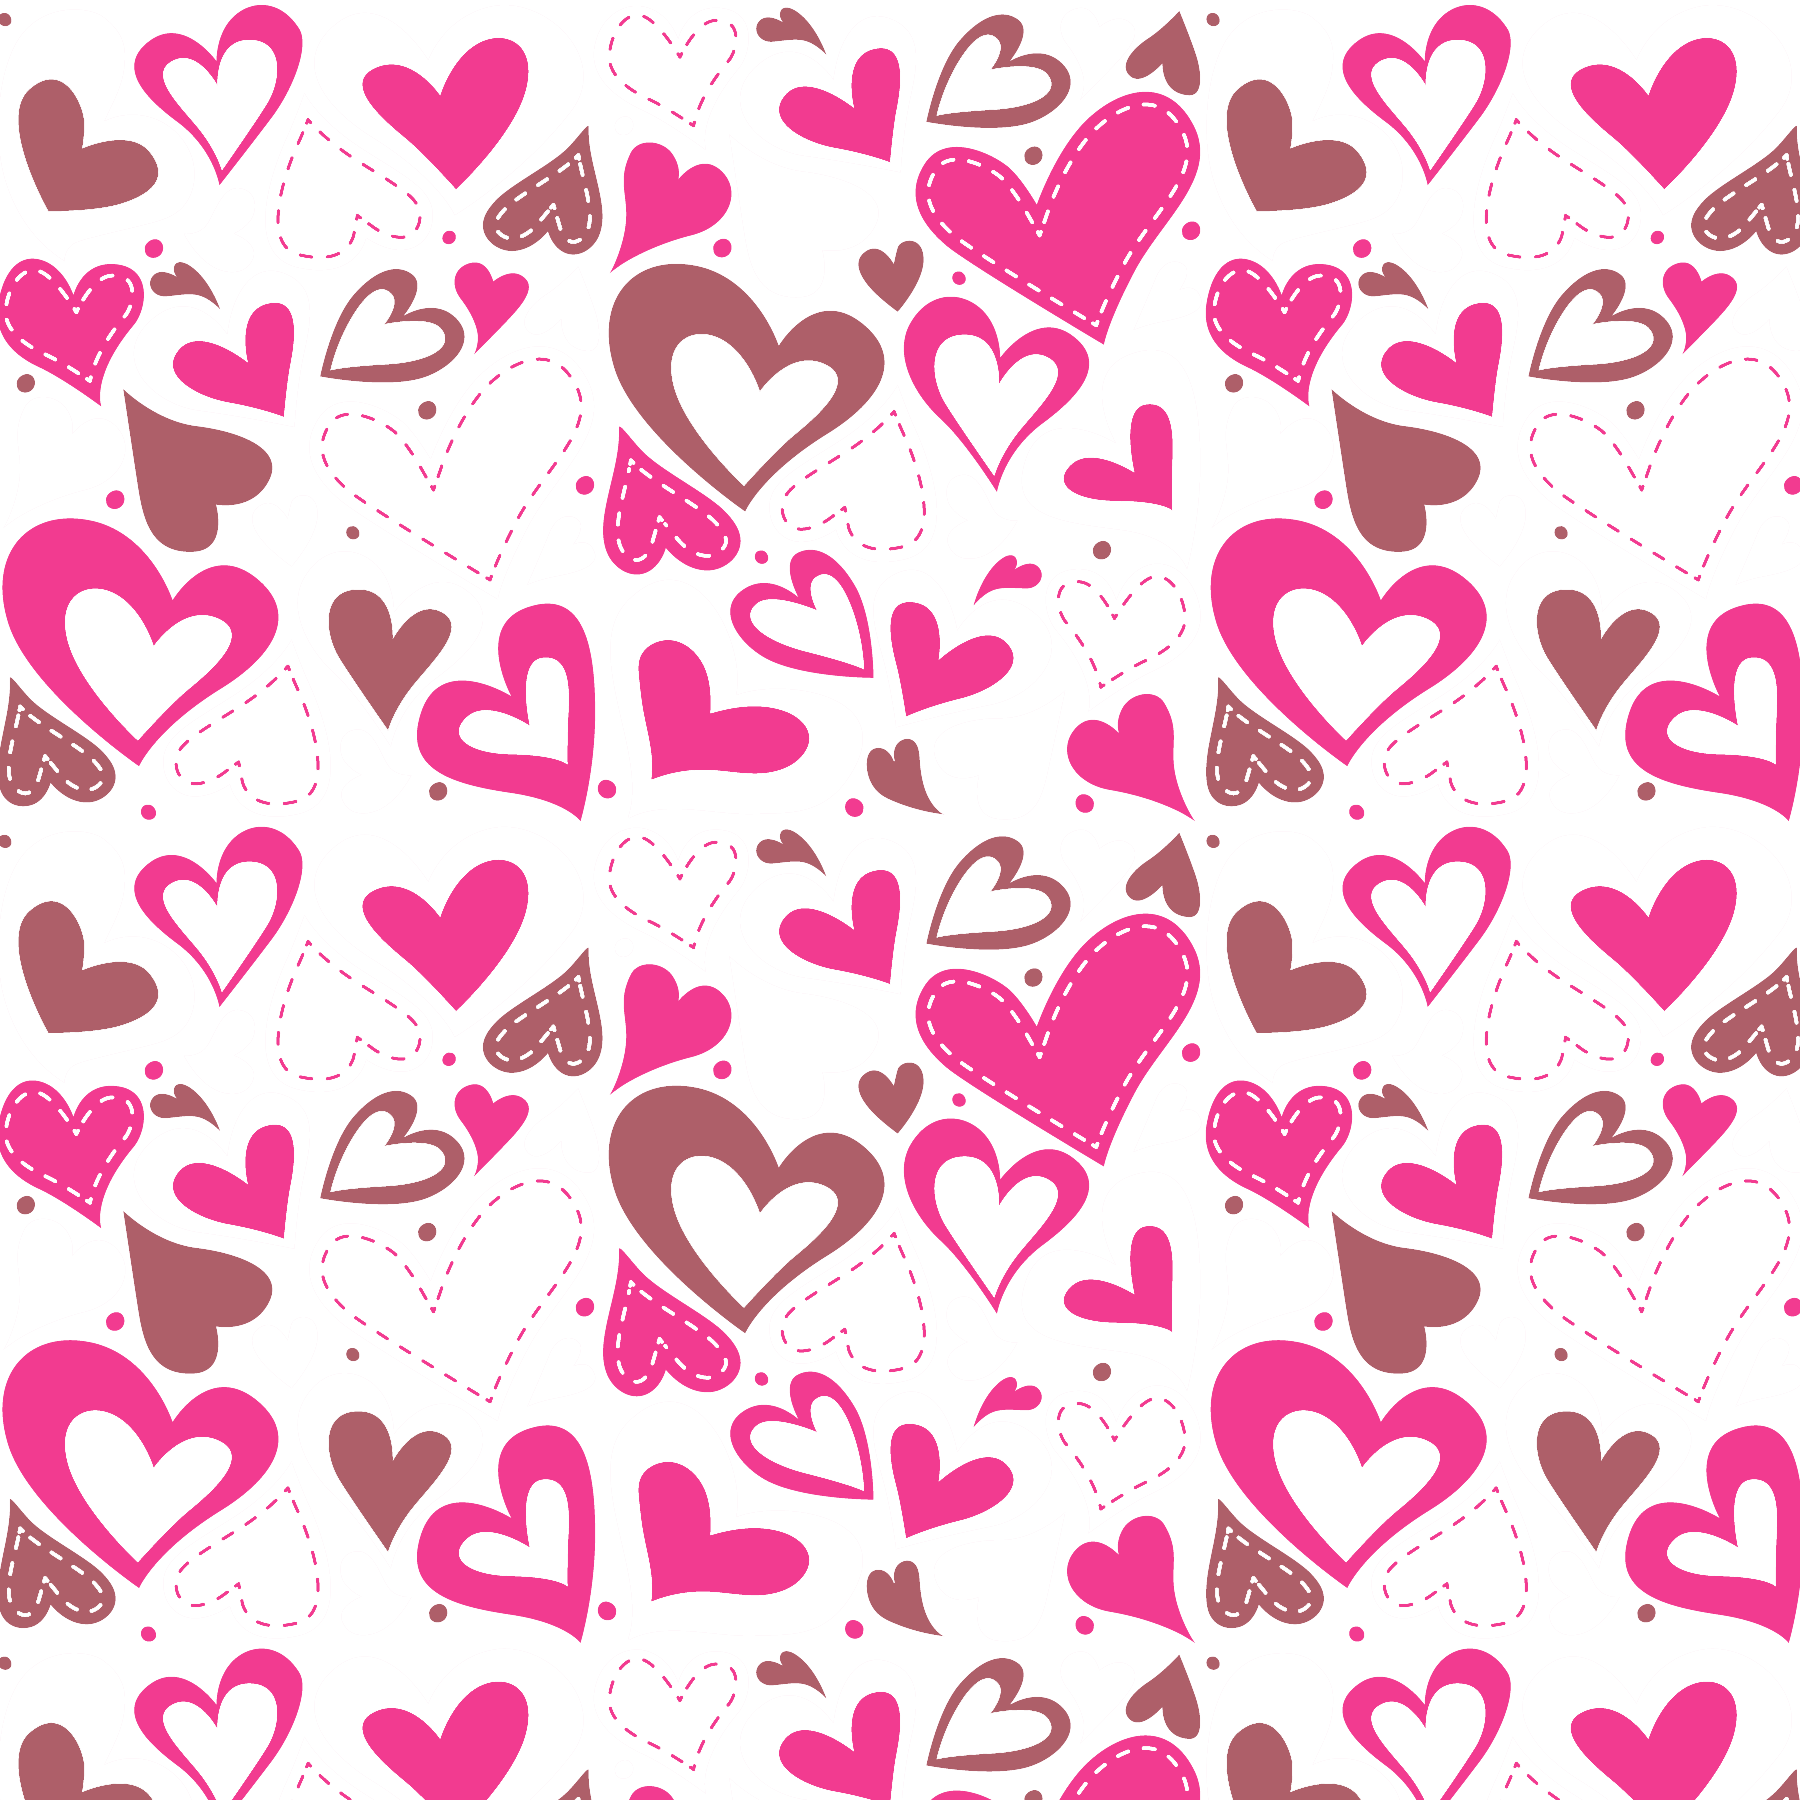 Hearts background png. Valentine s day heart